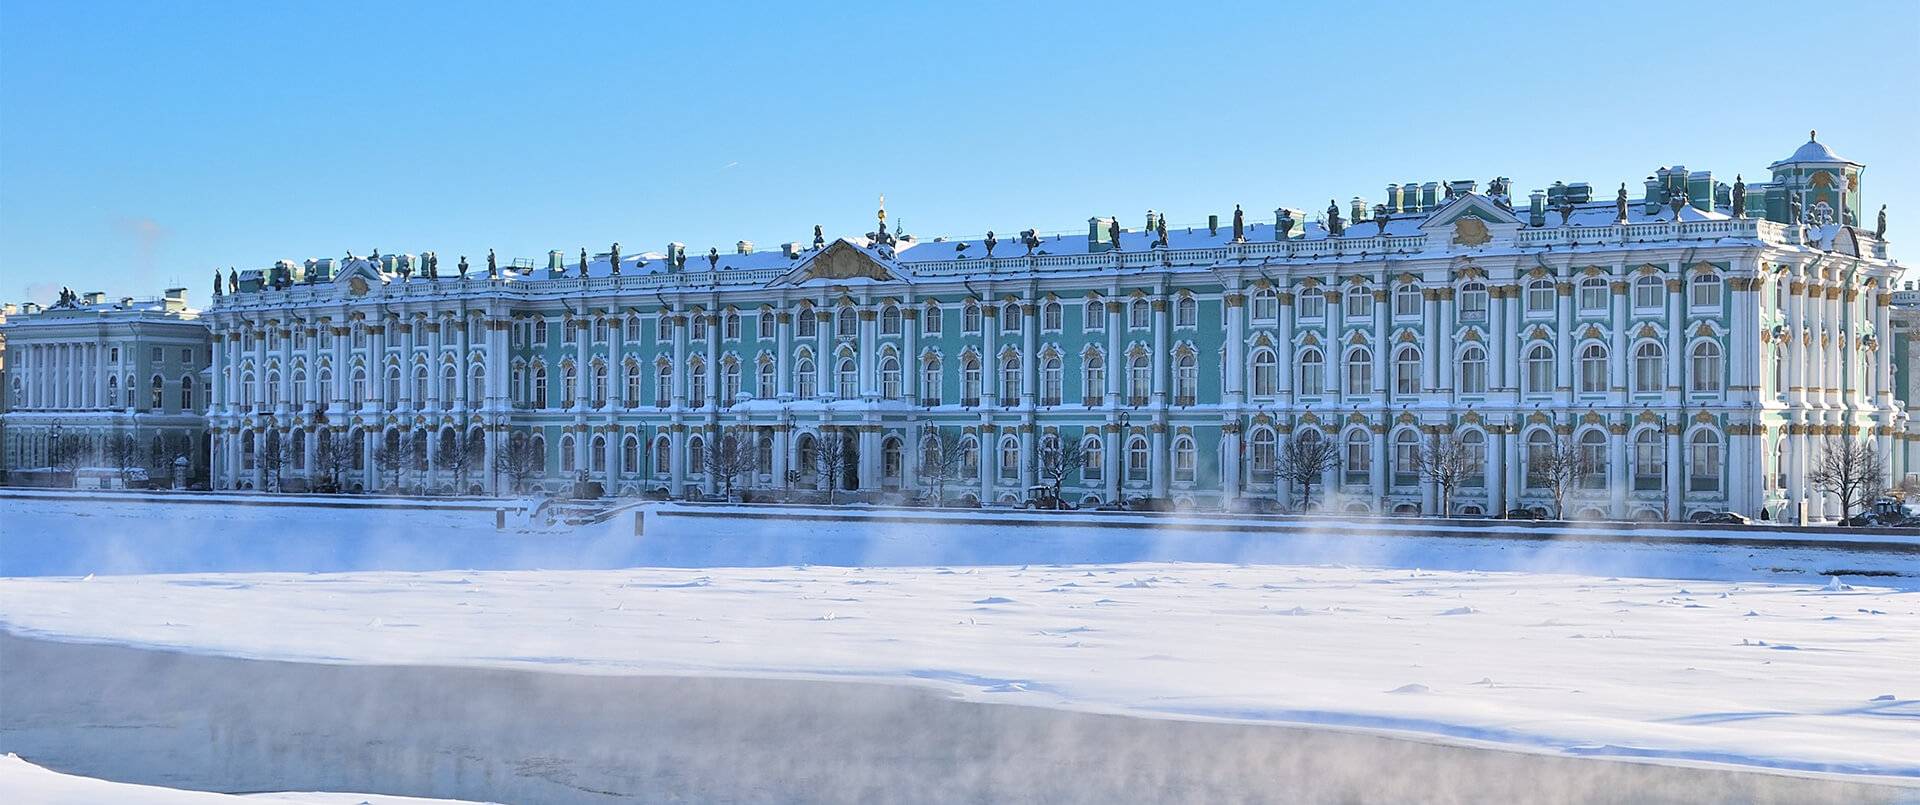 St. Petersburg: Treasures of the Russian Tsars